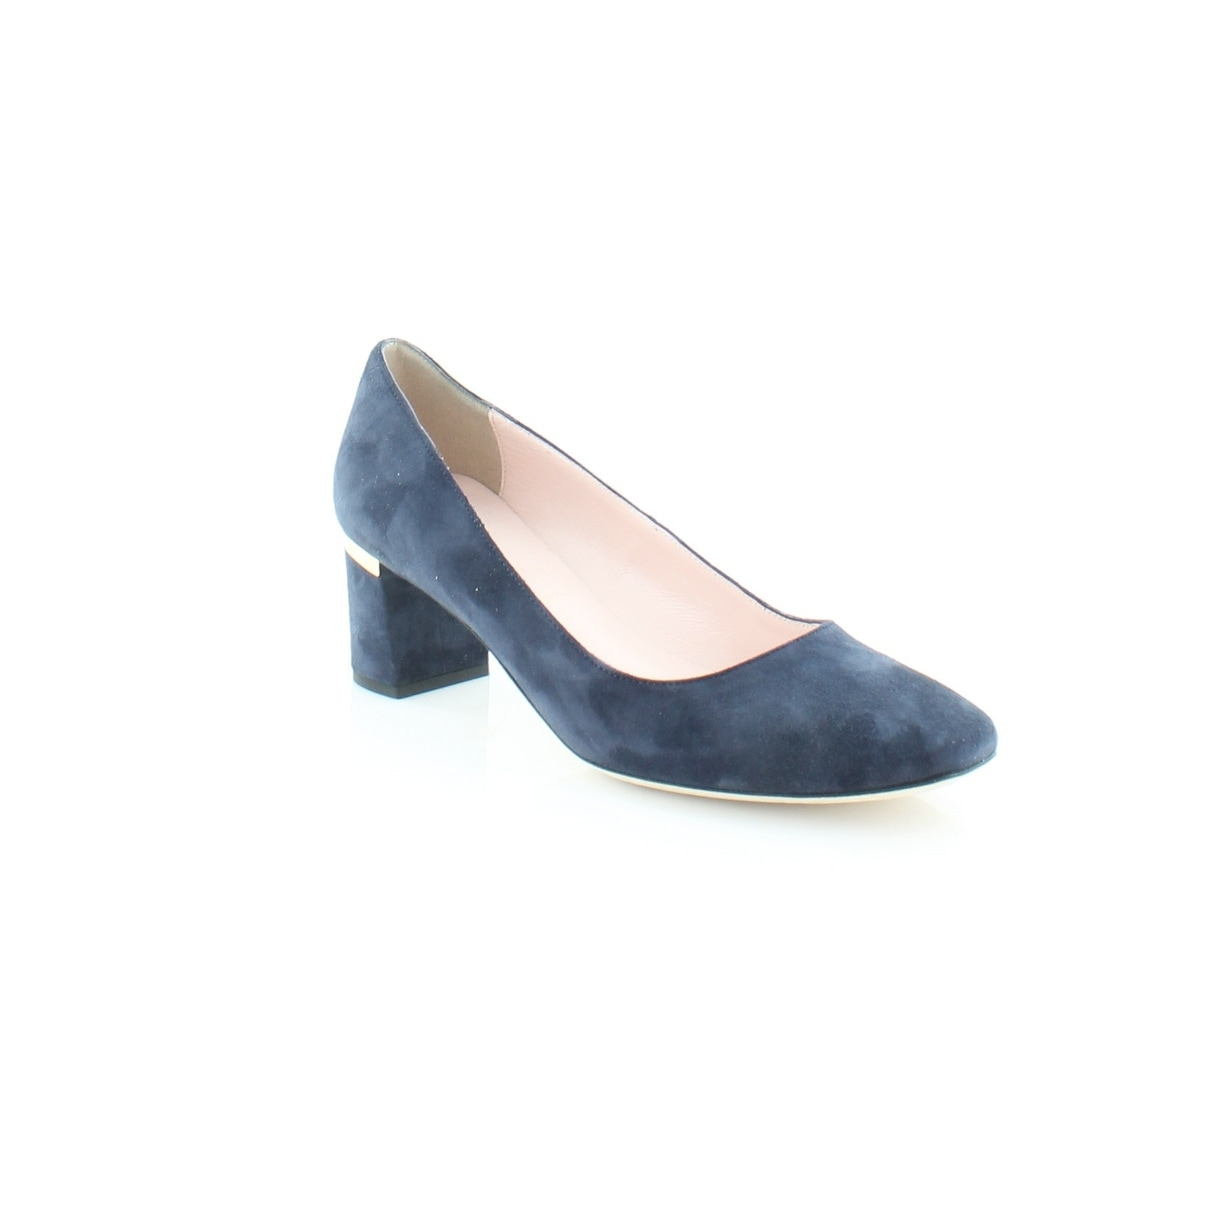 9802e21359 Shop Kate Spade Dolores Women's Heels Navy - Free Shipping Today -  Overstock.com - 25585635 - 7.5